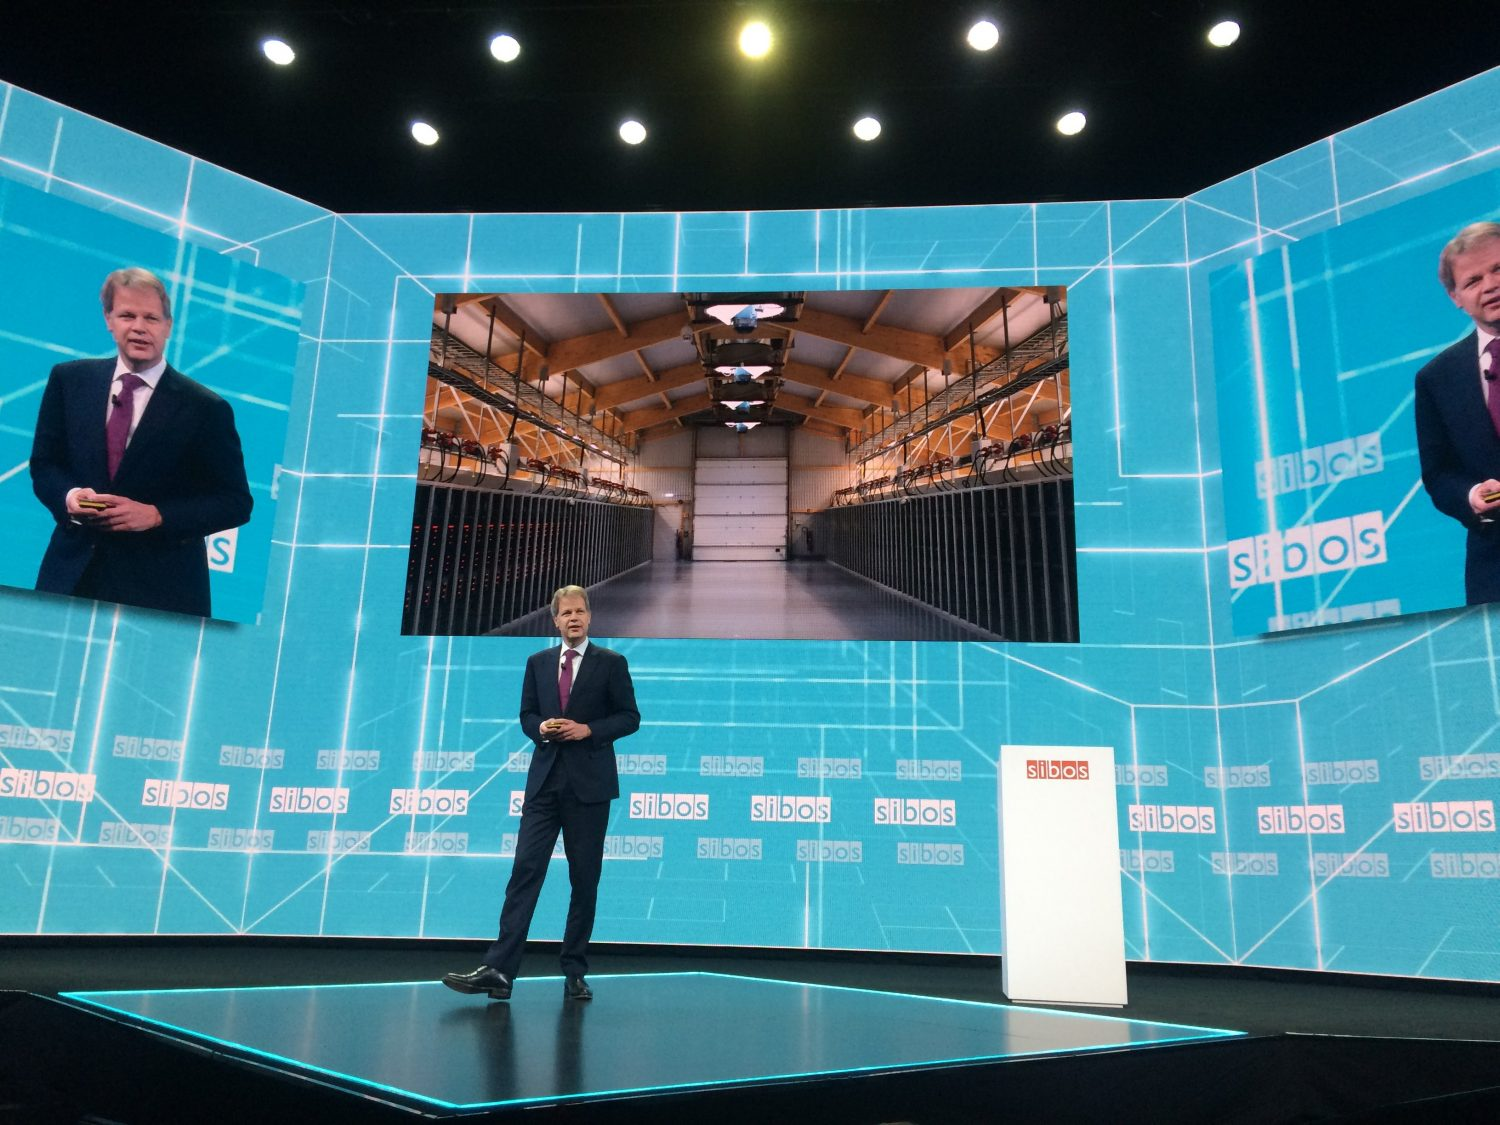 Sibos Highlights Swifts Complicated Relationship With Blockchain  CoinDesk